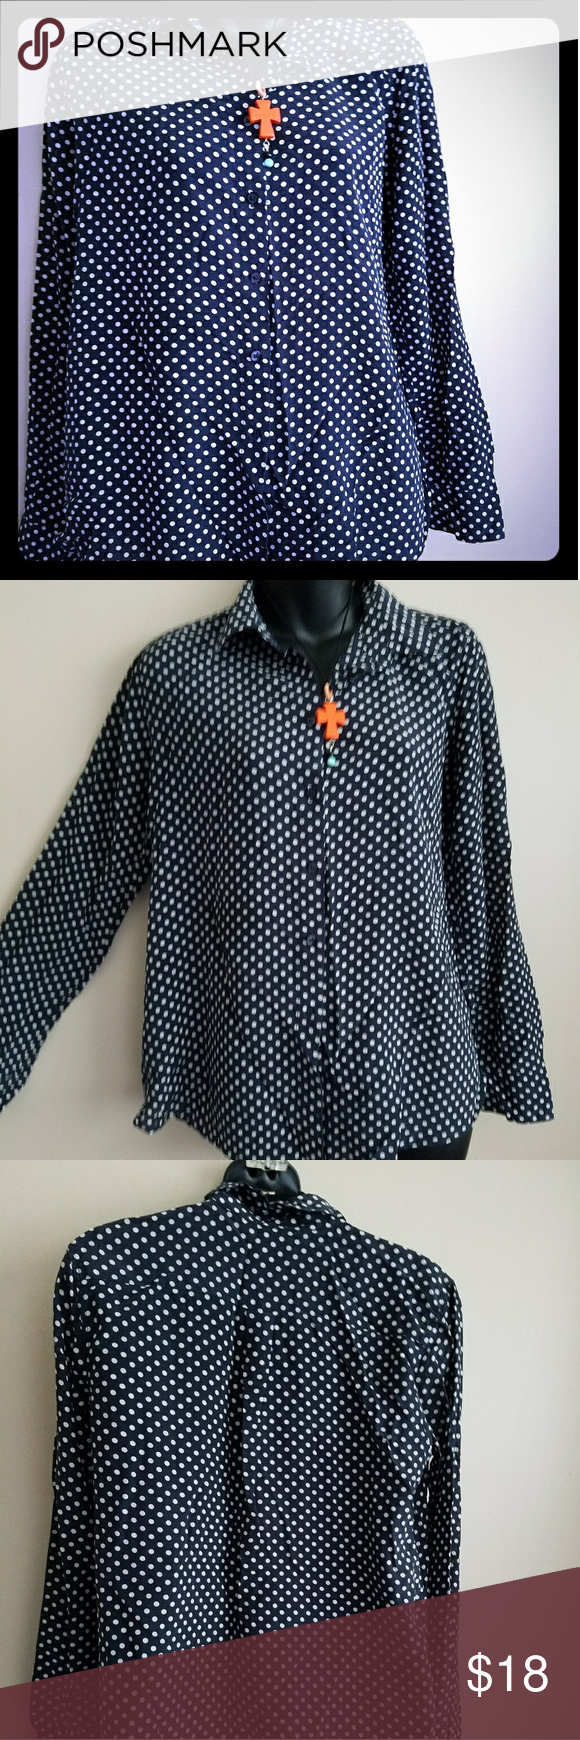 30dc2822ae2dcd Women polka dots blouse Women dark blue polka dots blouse